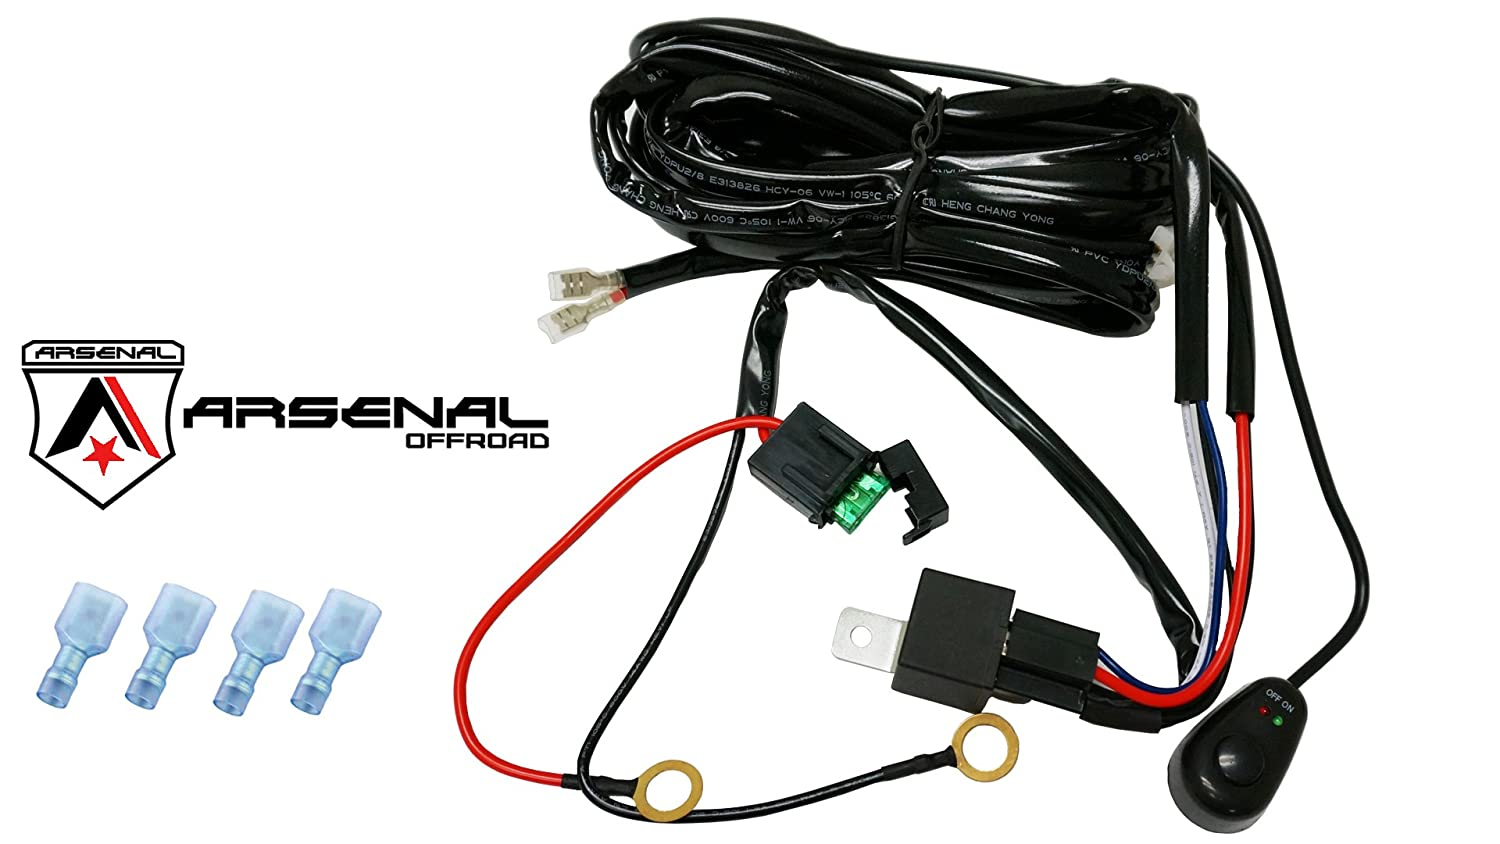 717KJzfkLyL._SL1500_ amazon com 1 arsenal offroad led light bar universal wiring kenny cash wiring harness at n-0.co